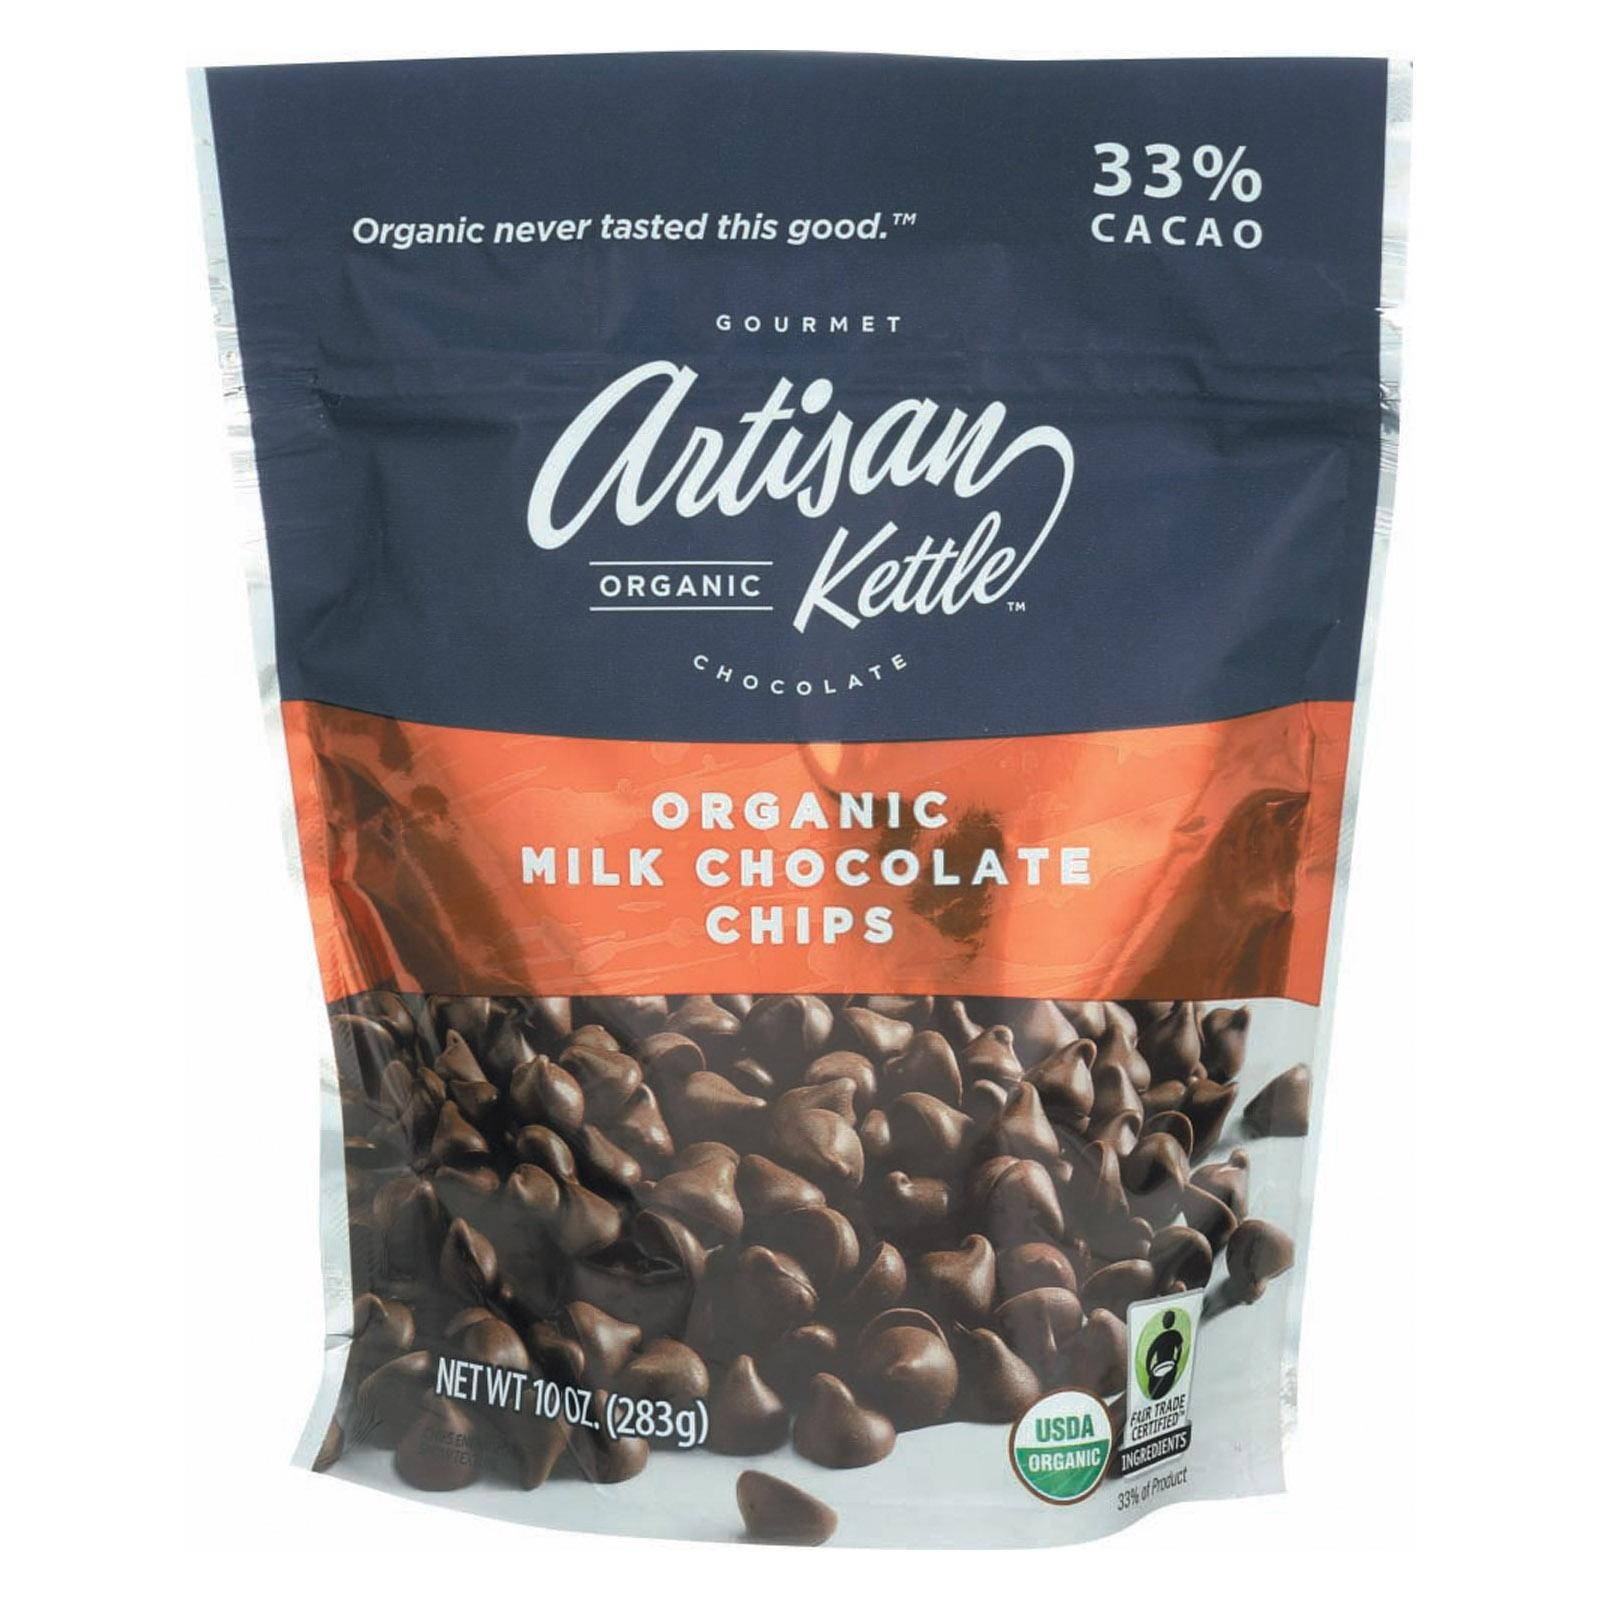 Artisan Kettle Chocolate Chips - Organic - Milk - pack of 6 - 10 Oz